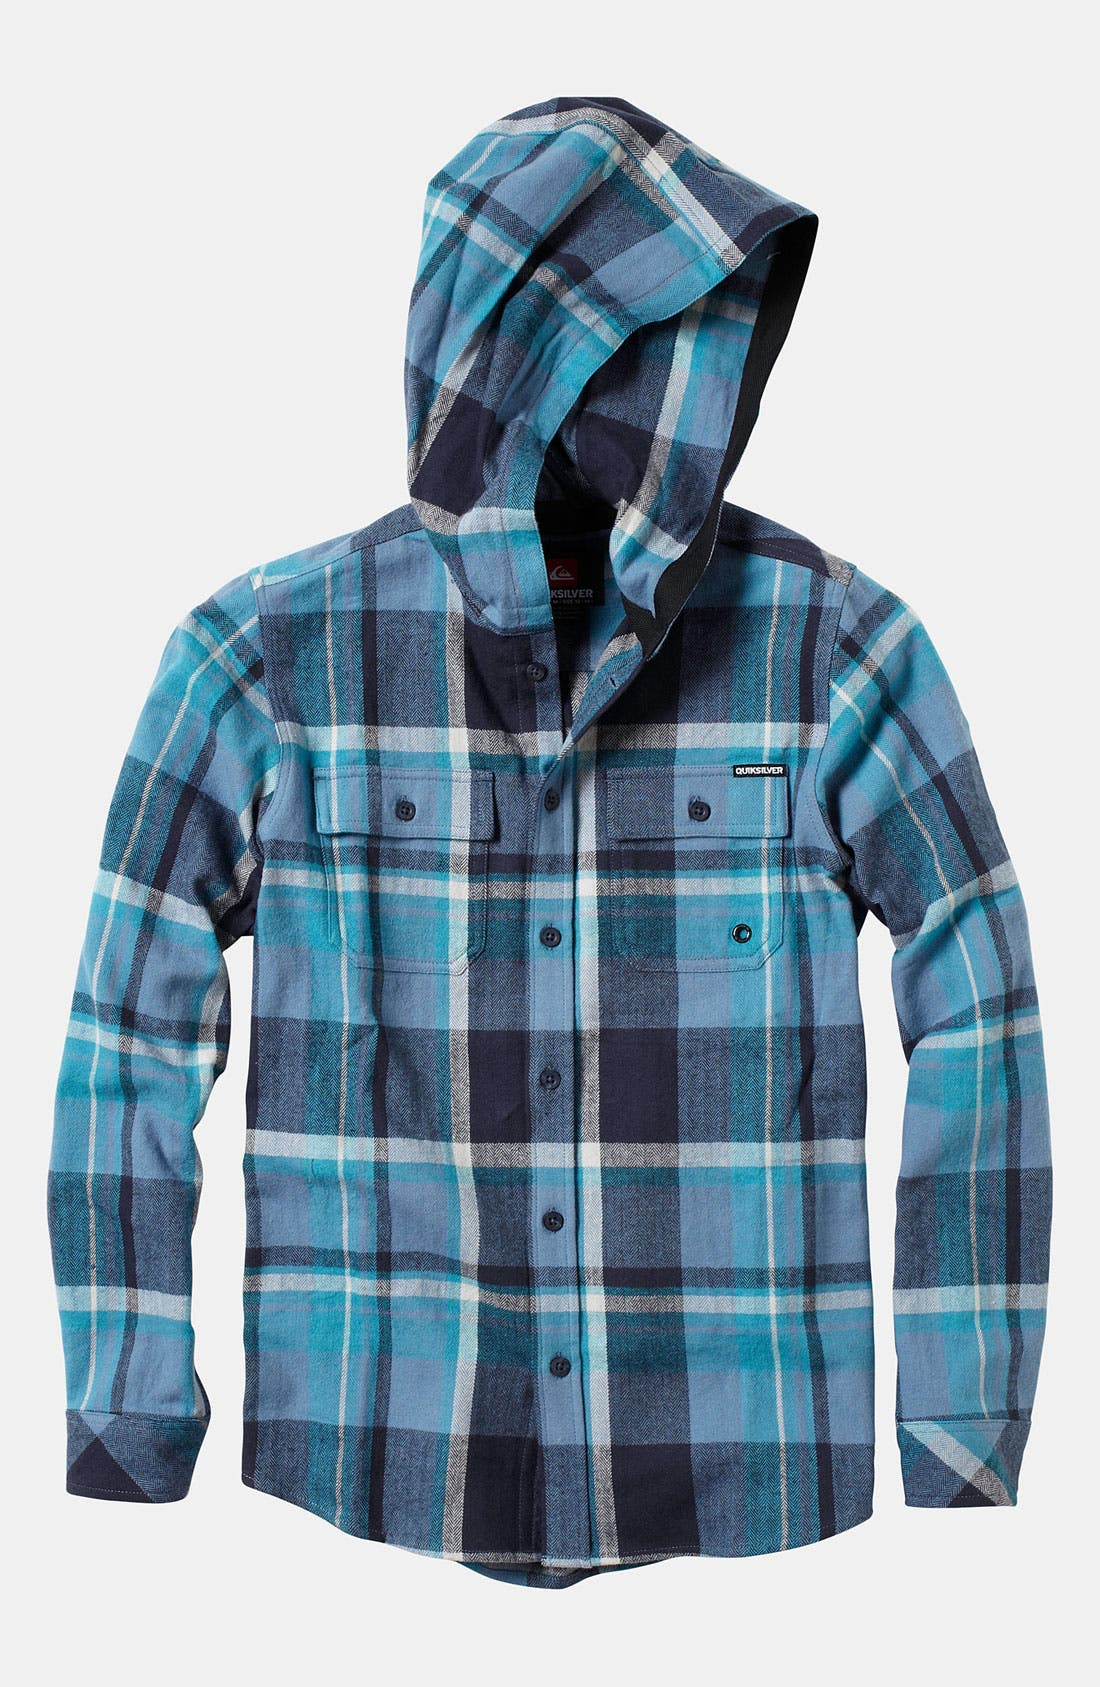 Alternate Image 1 Selected - Quiksilver 'Four Shore' Hooded Flannel Shirt (Big Boys)